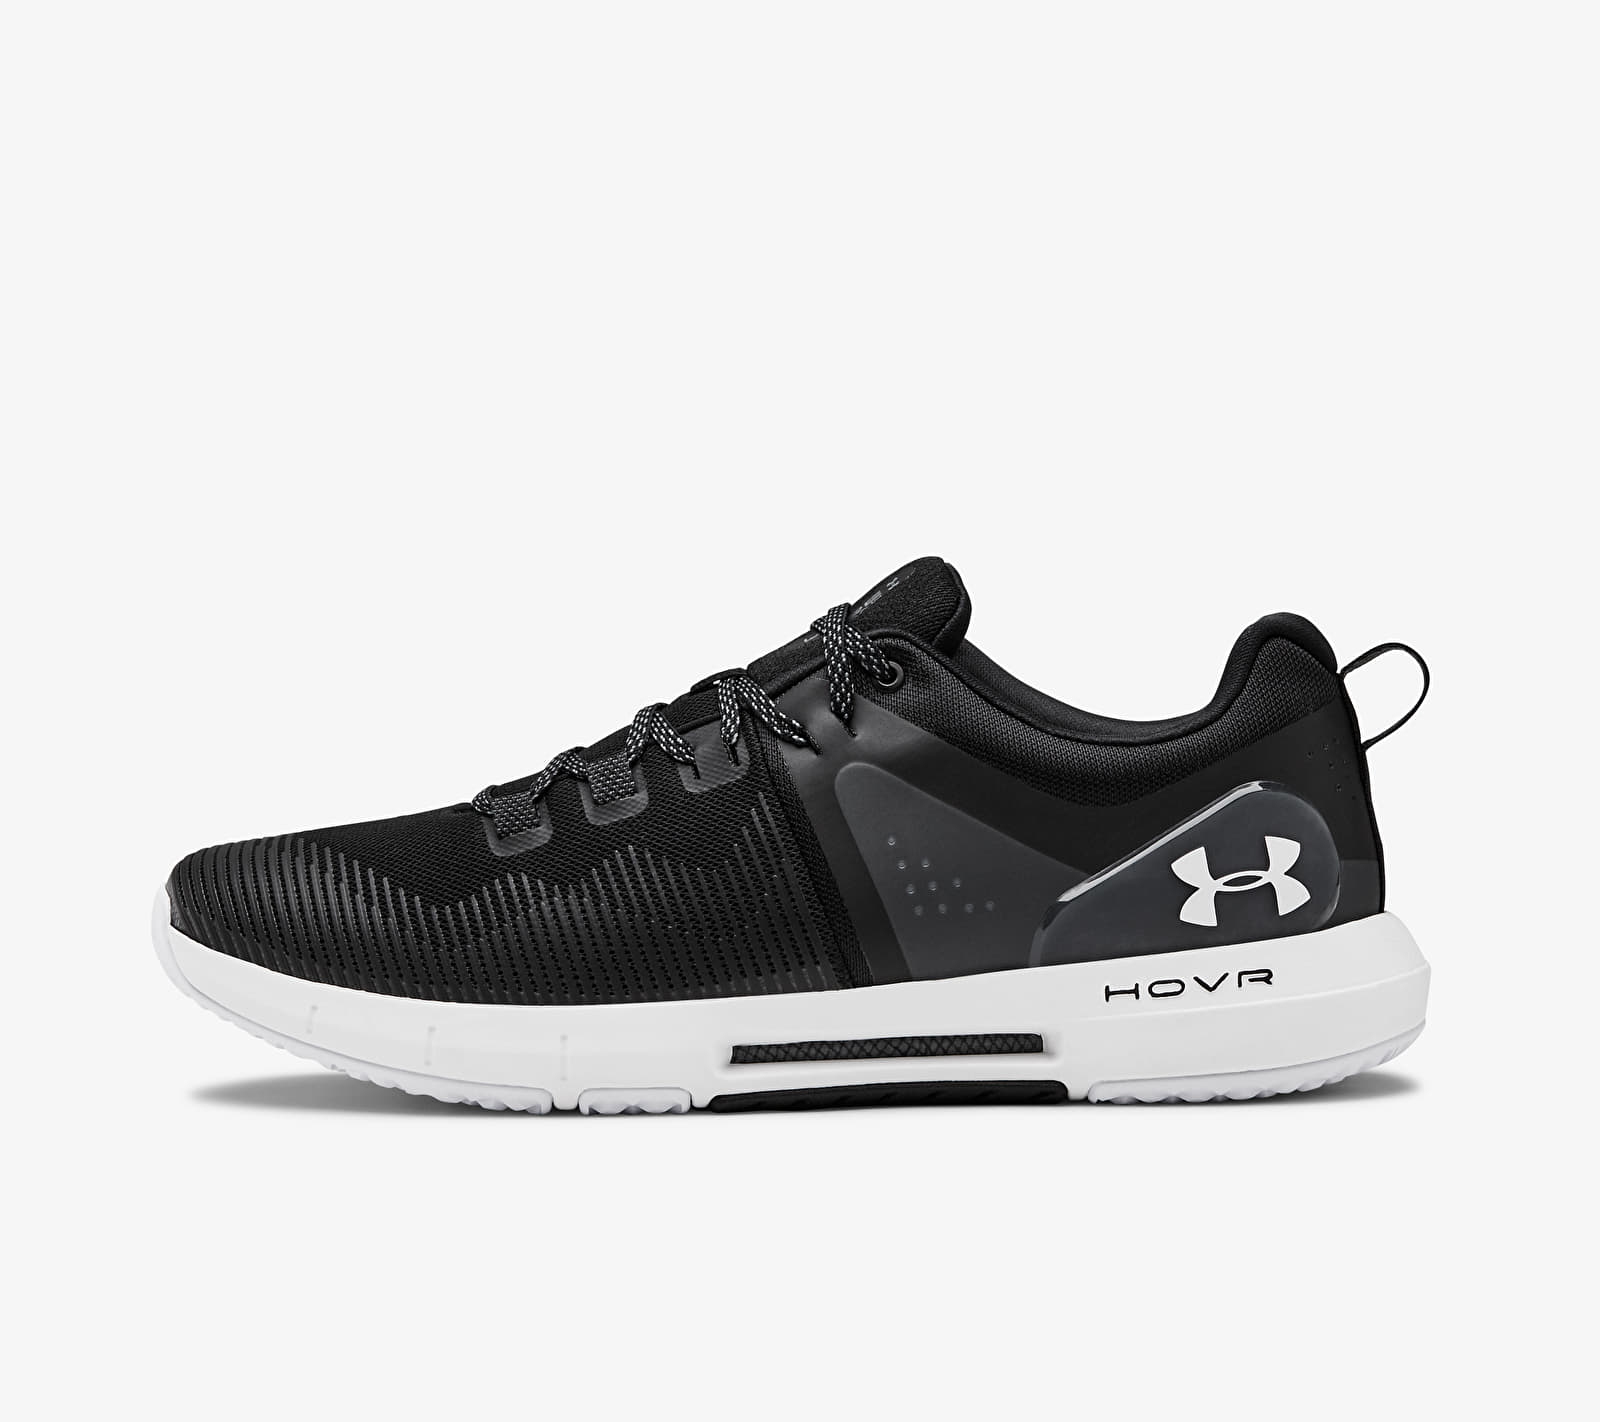 Under Armour HOVR Rise Black/ White/ White EUR 42.5